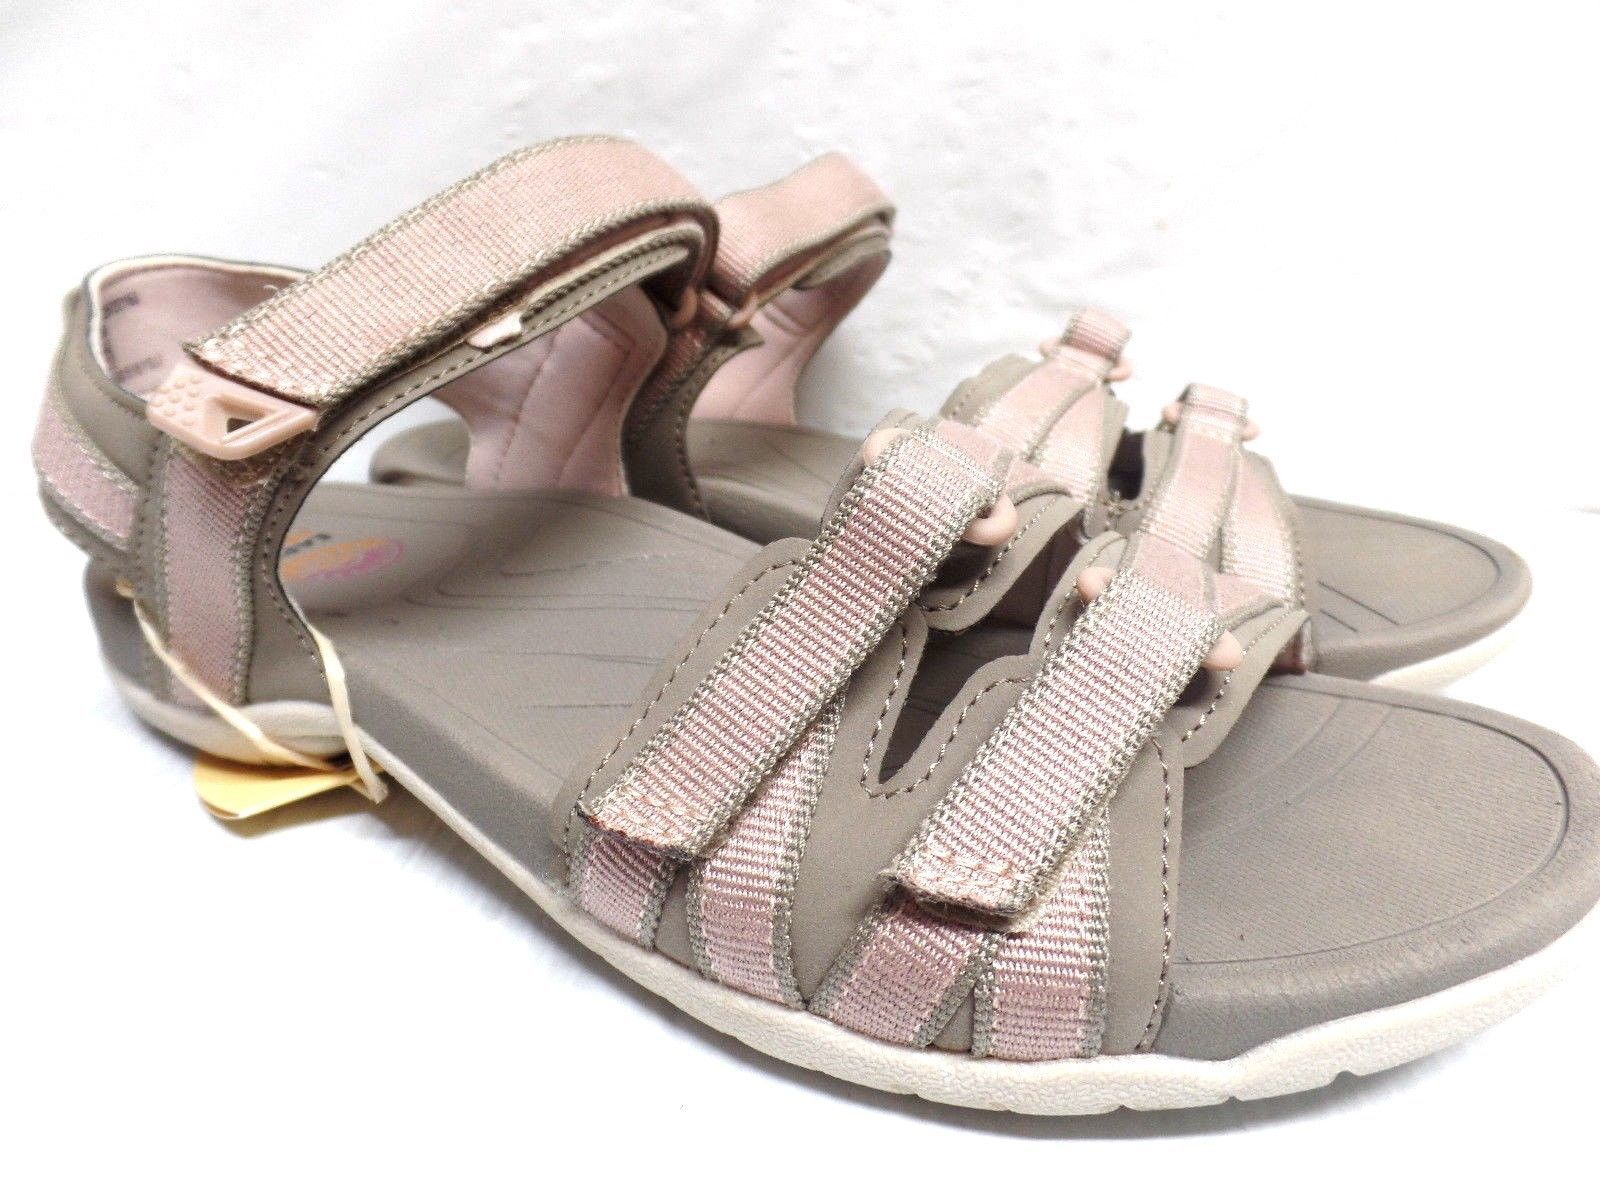 bdd29d8f4 Earth Spirit Taupe Women s Sandals and 33 similar items. S l1600